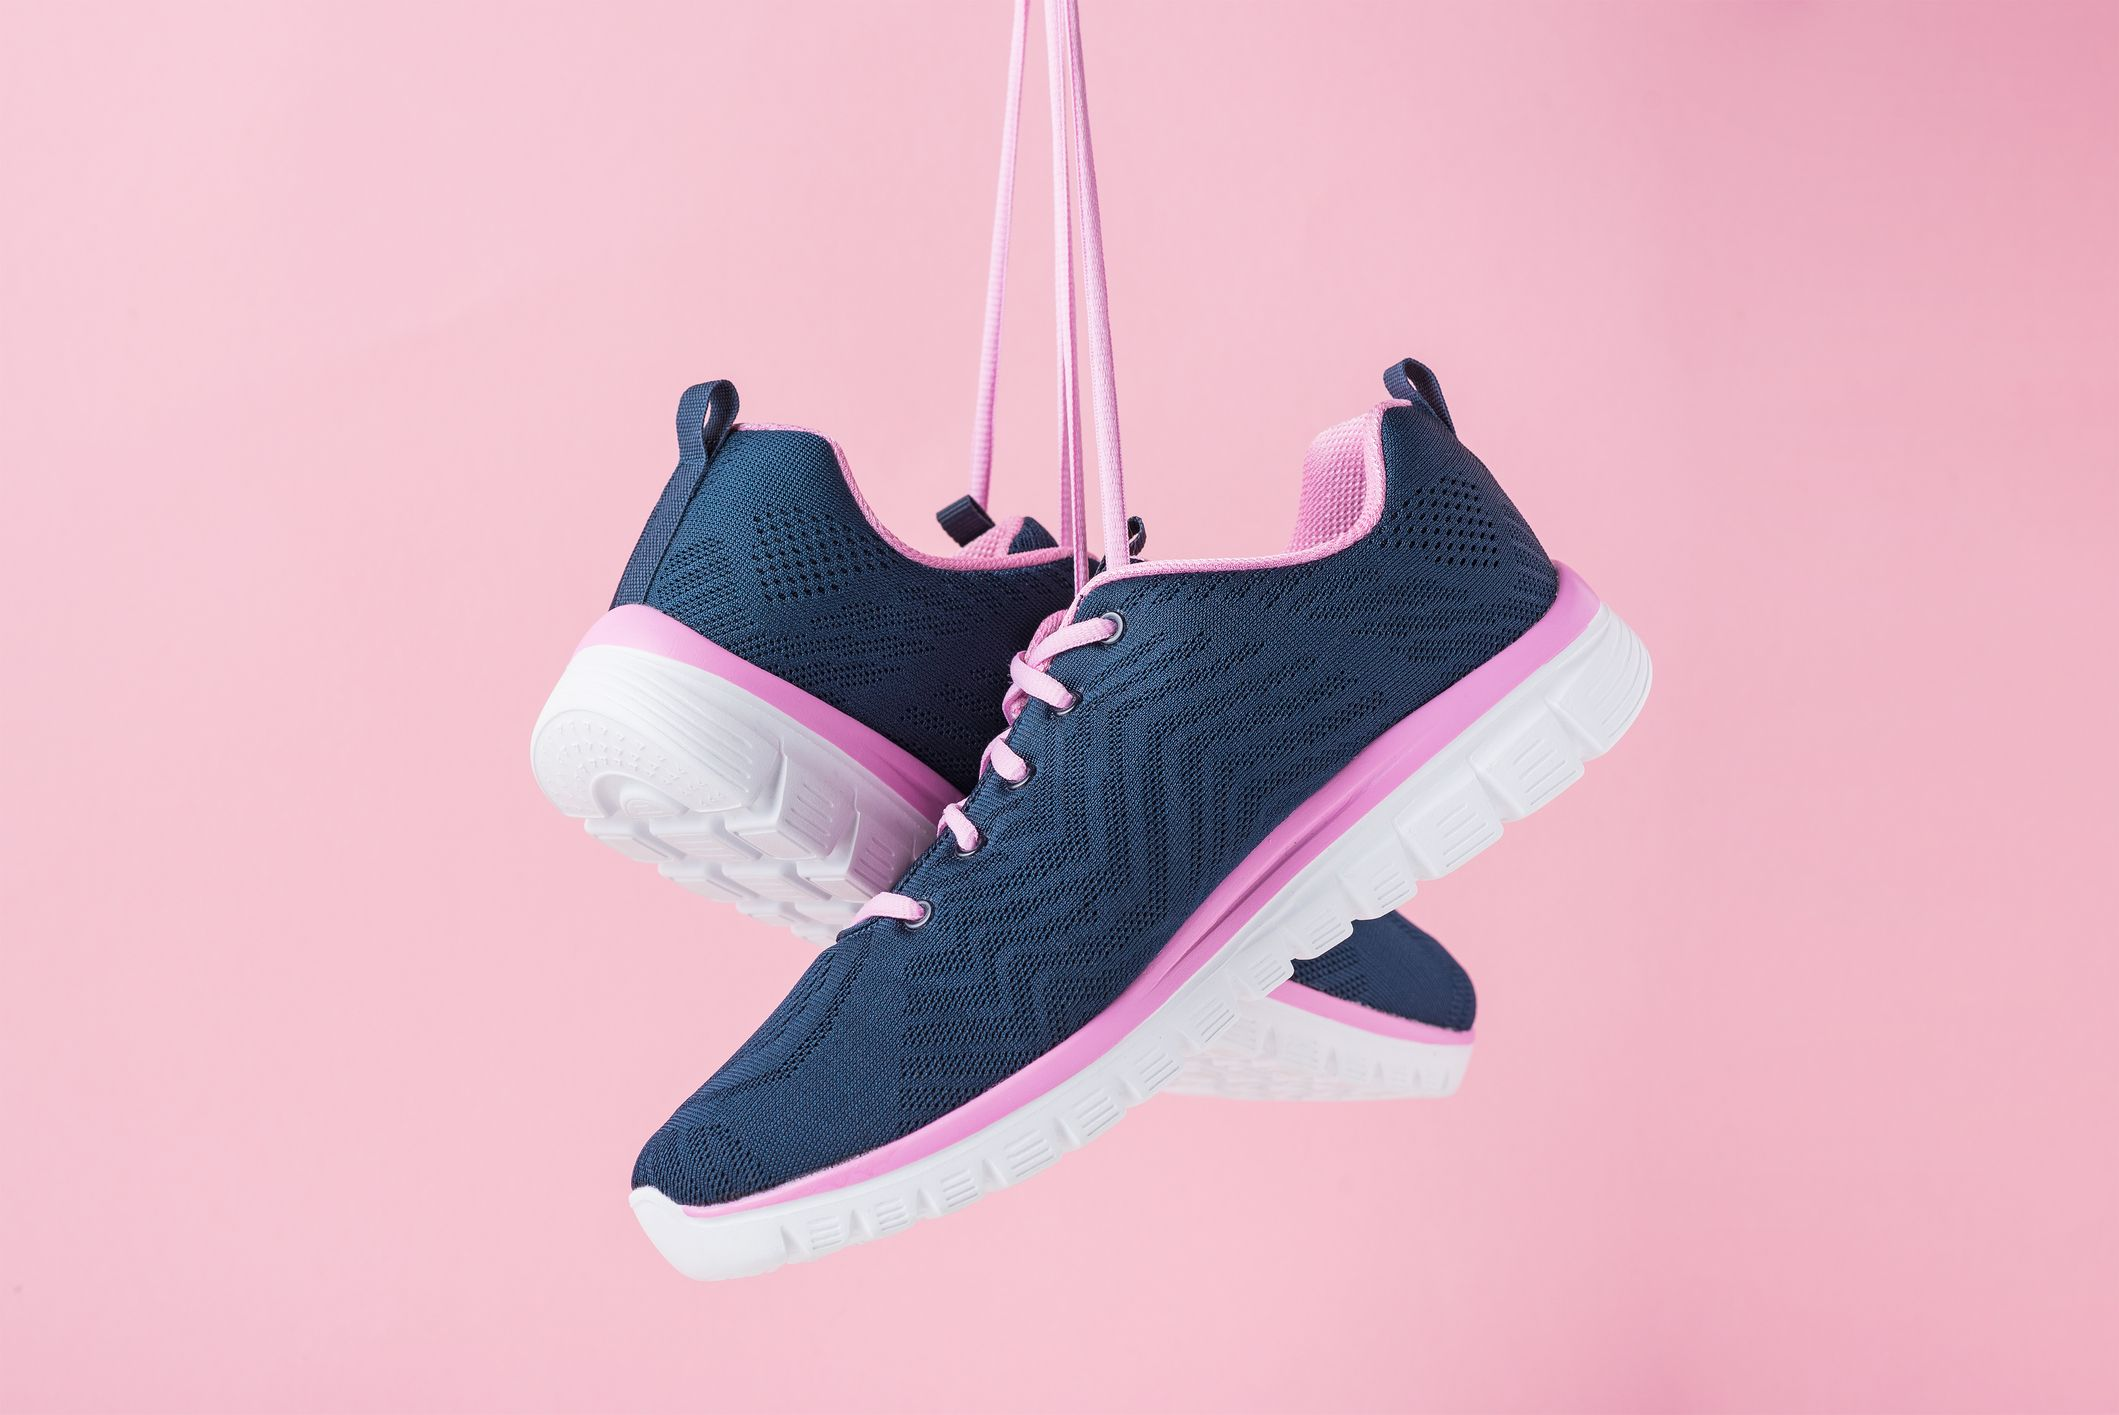 female sneakers for run on a pink background fashion stylish sport shoes, close up